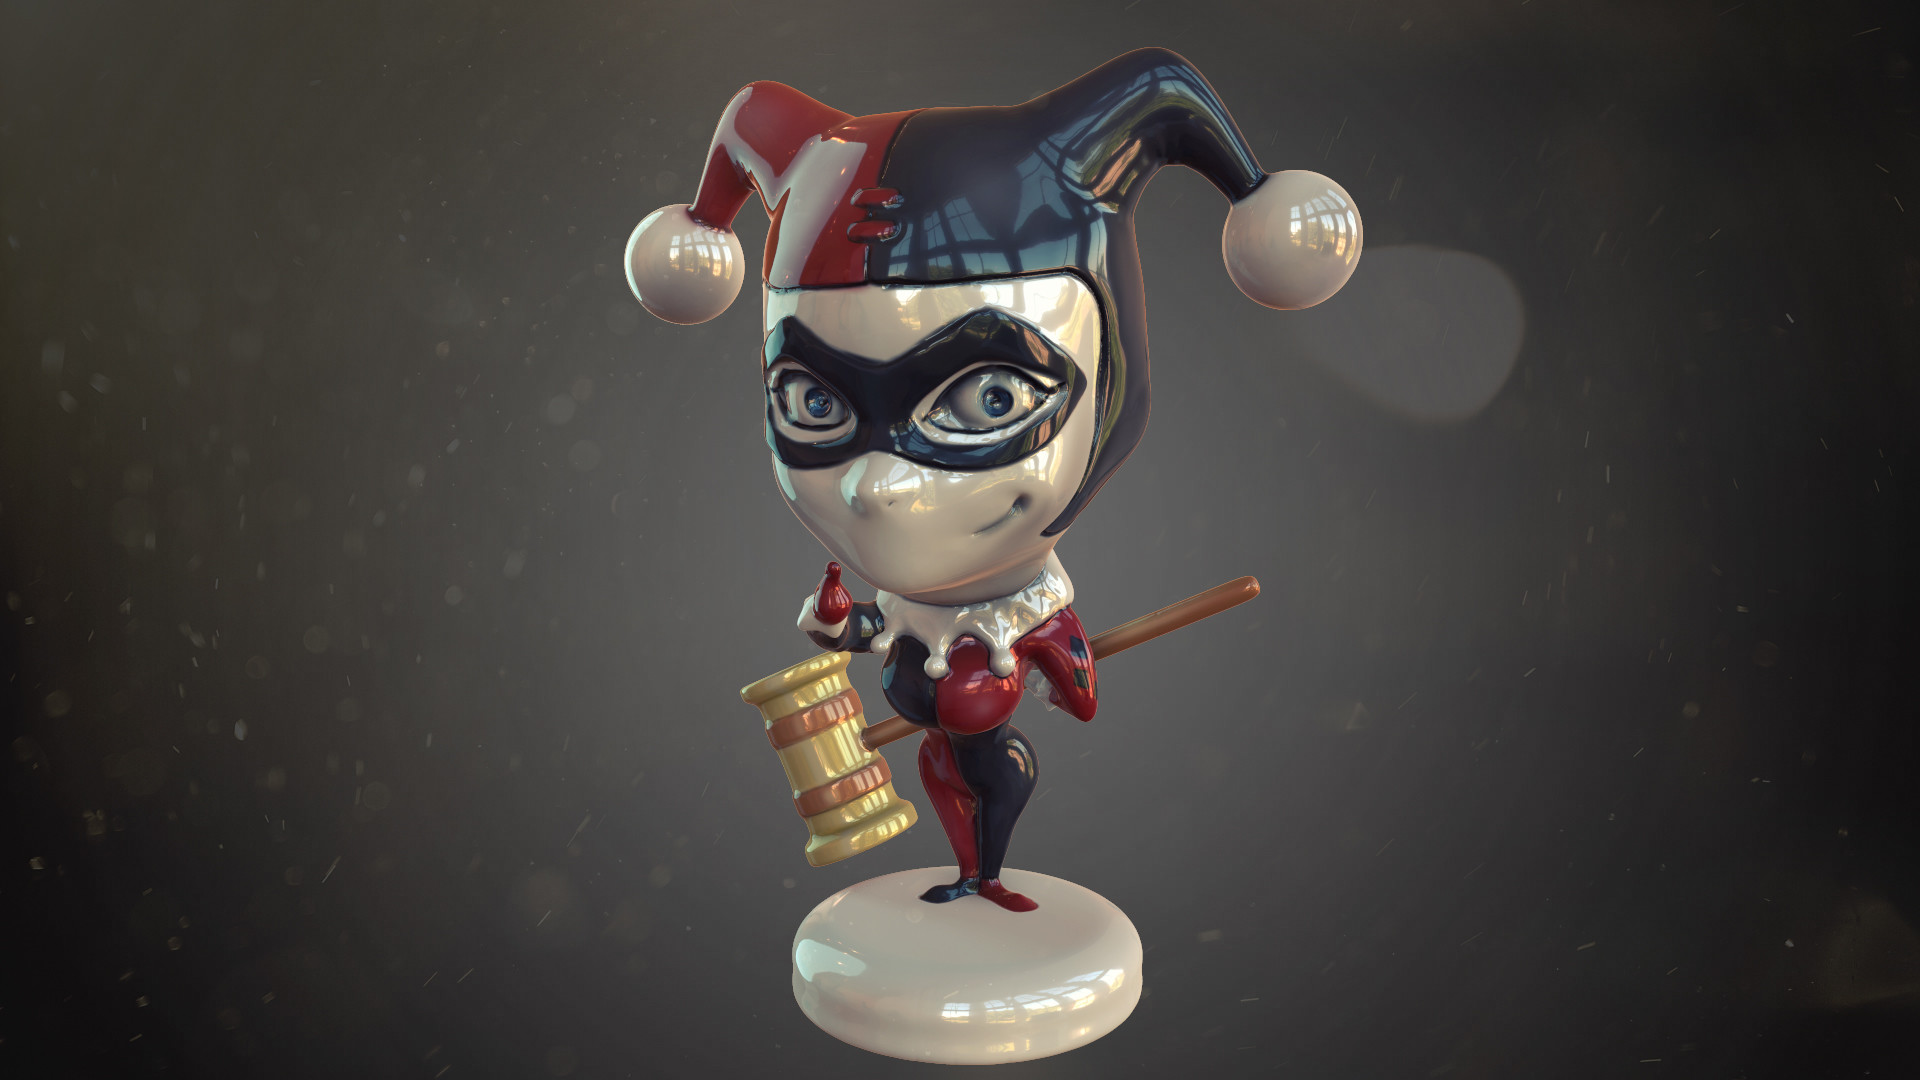 Cartoon Harley Quinn sculpting in zbrush for 3d printing